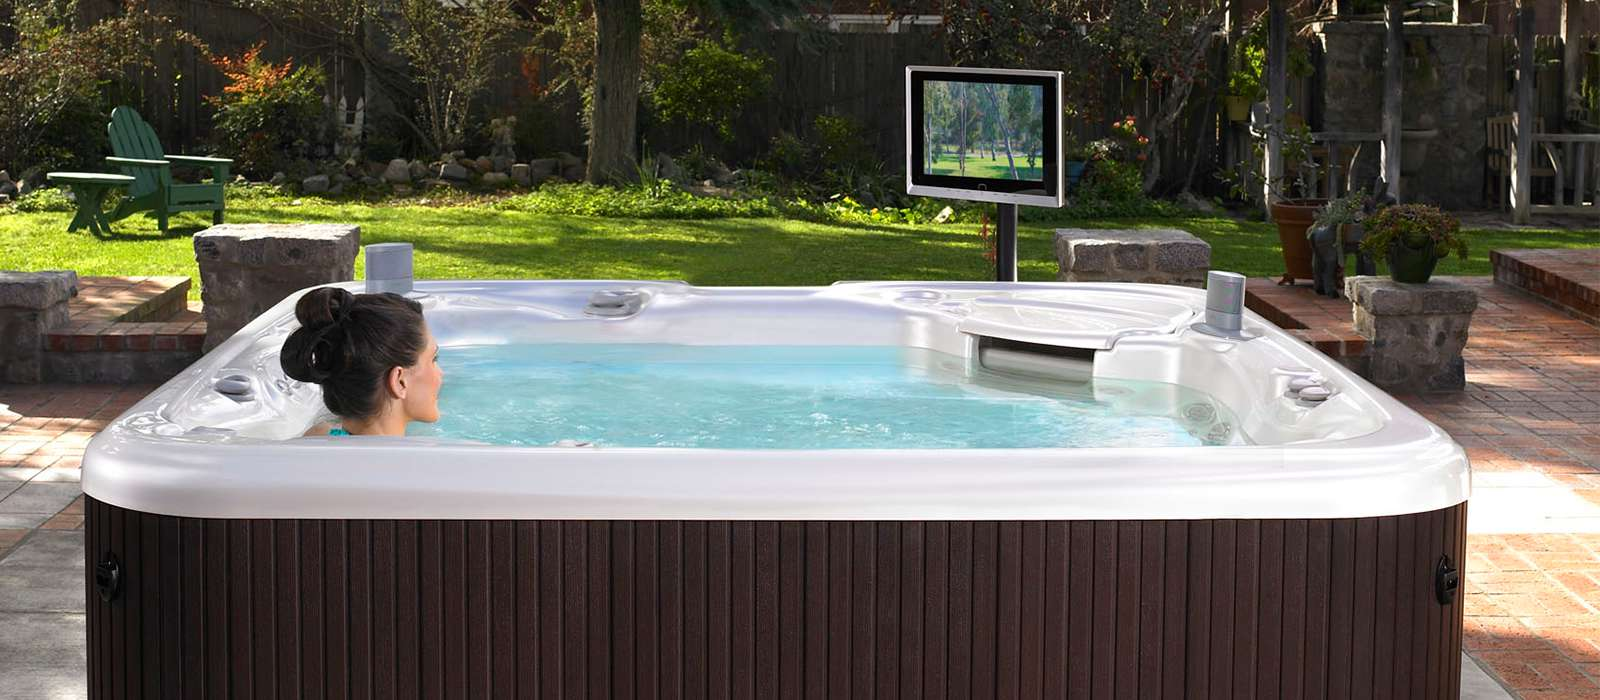 Gallery Mountain Hot Tub